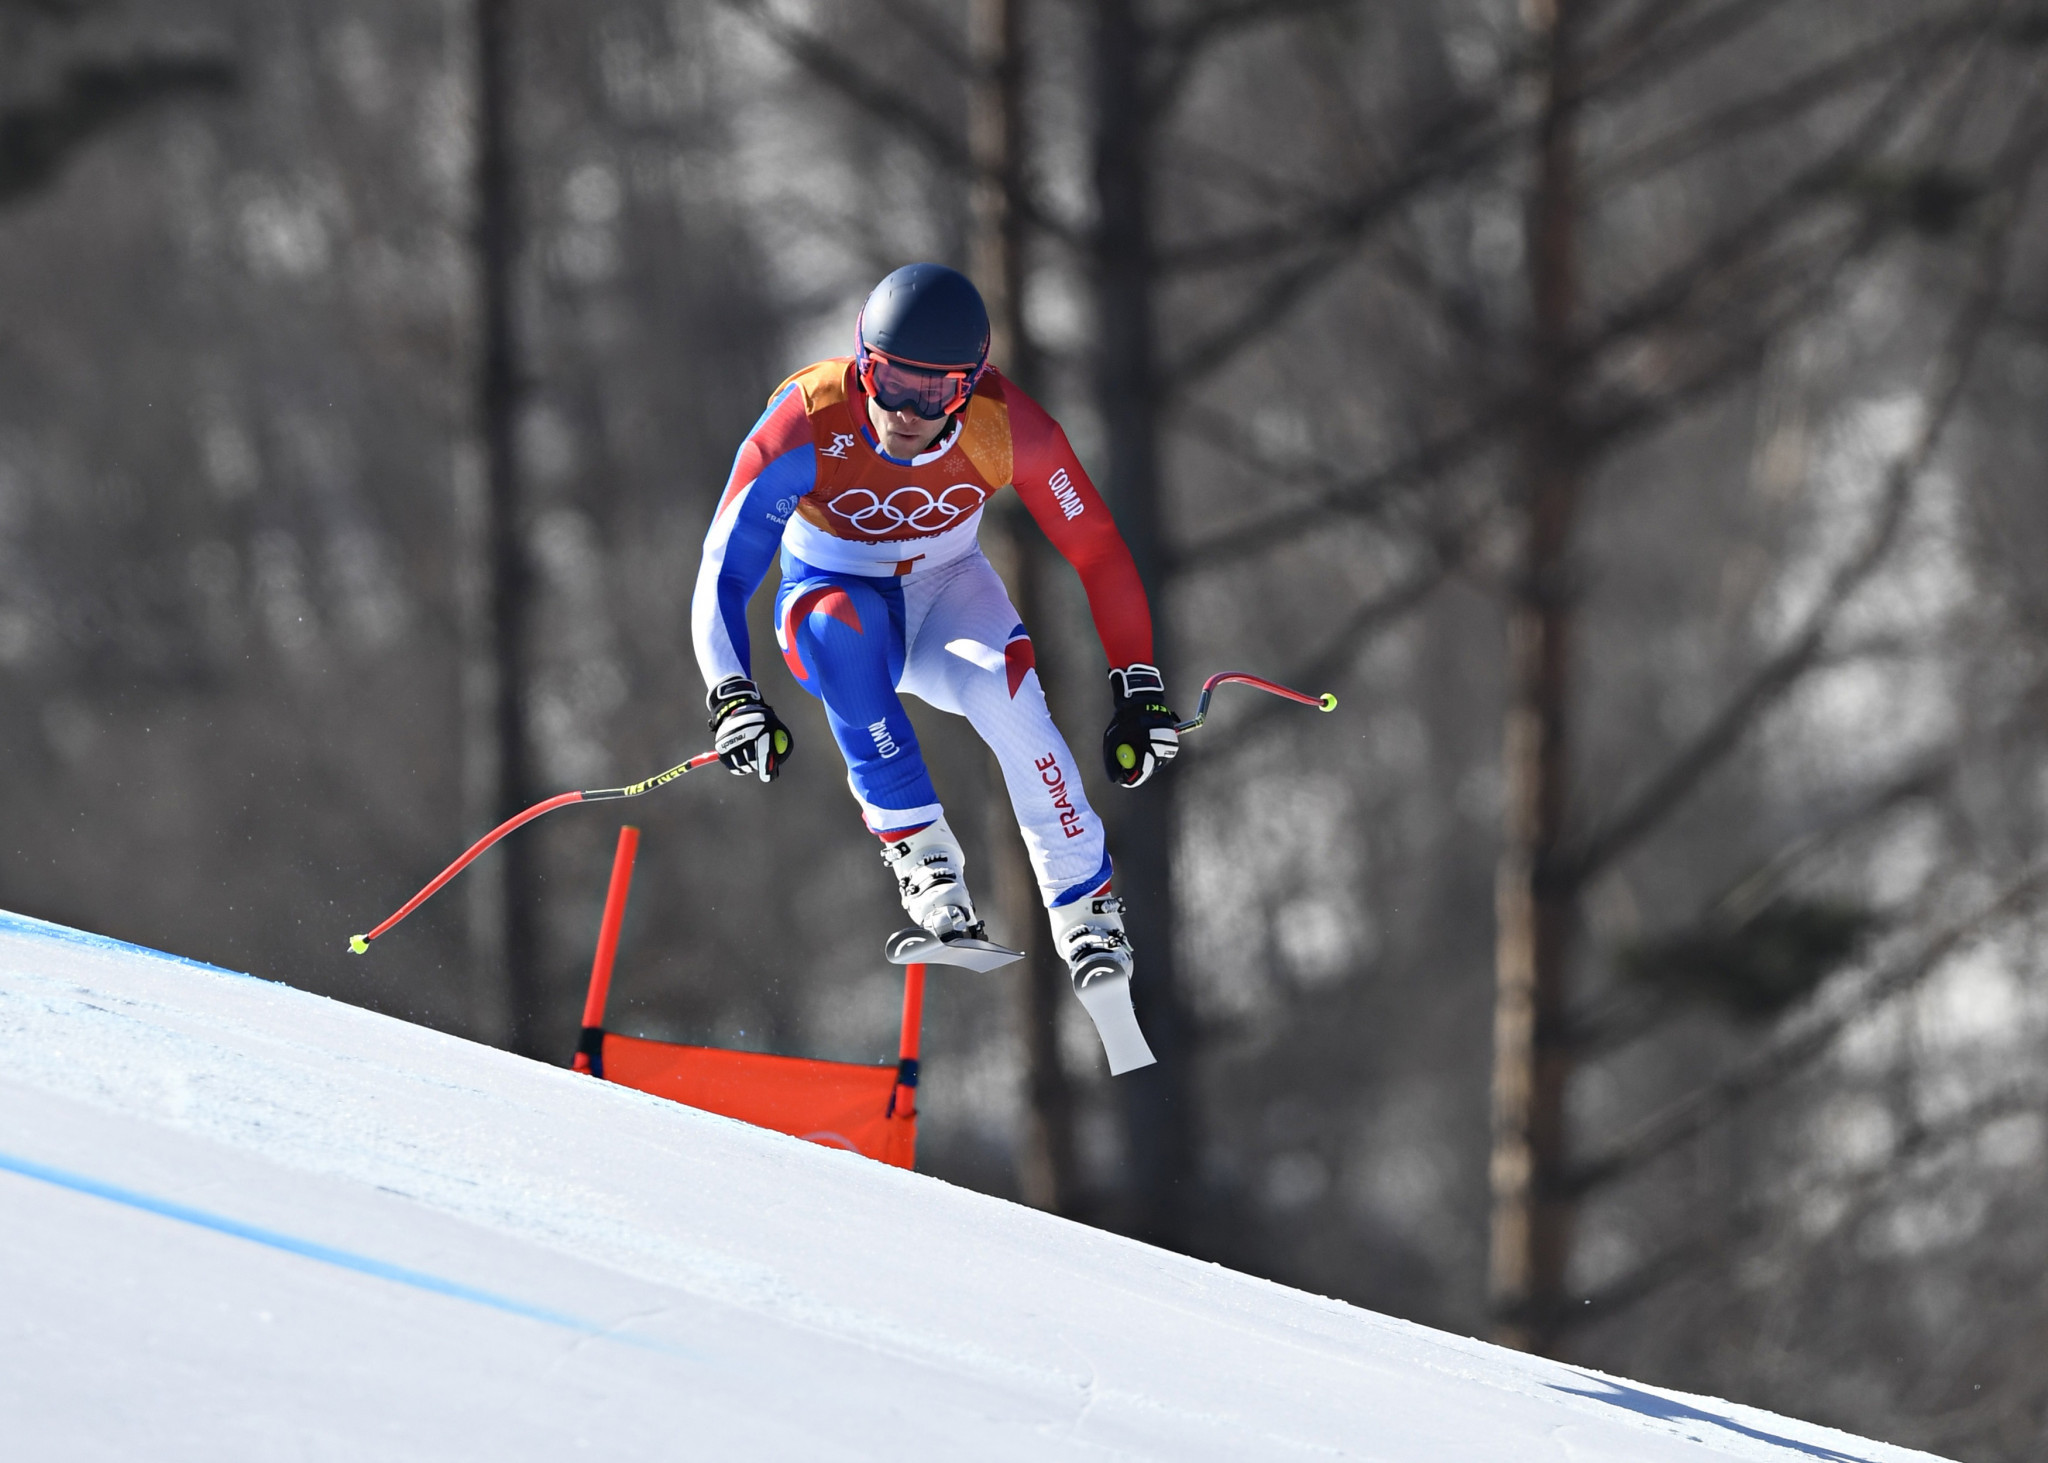 France's Alexis Pinturault finished a close second to take the silver medal ©Getty Images